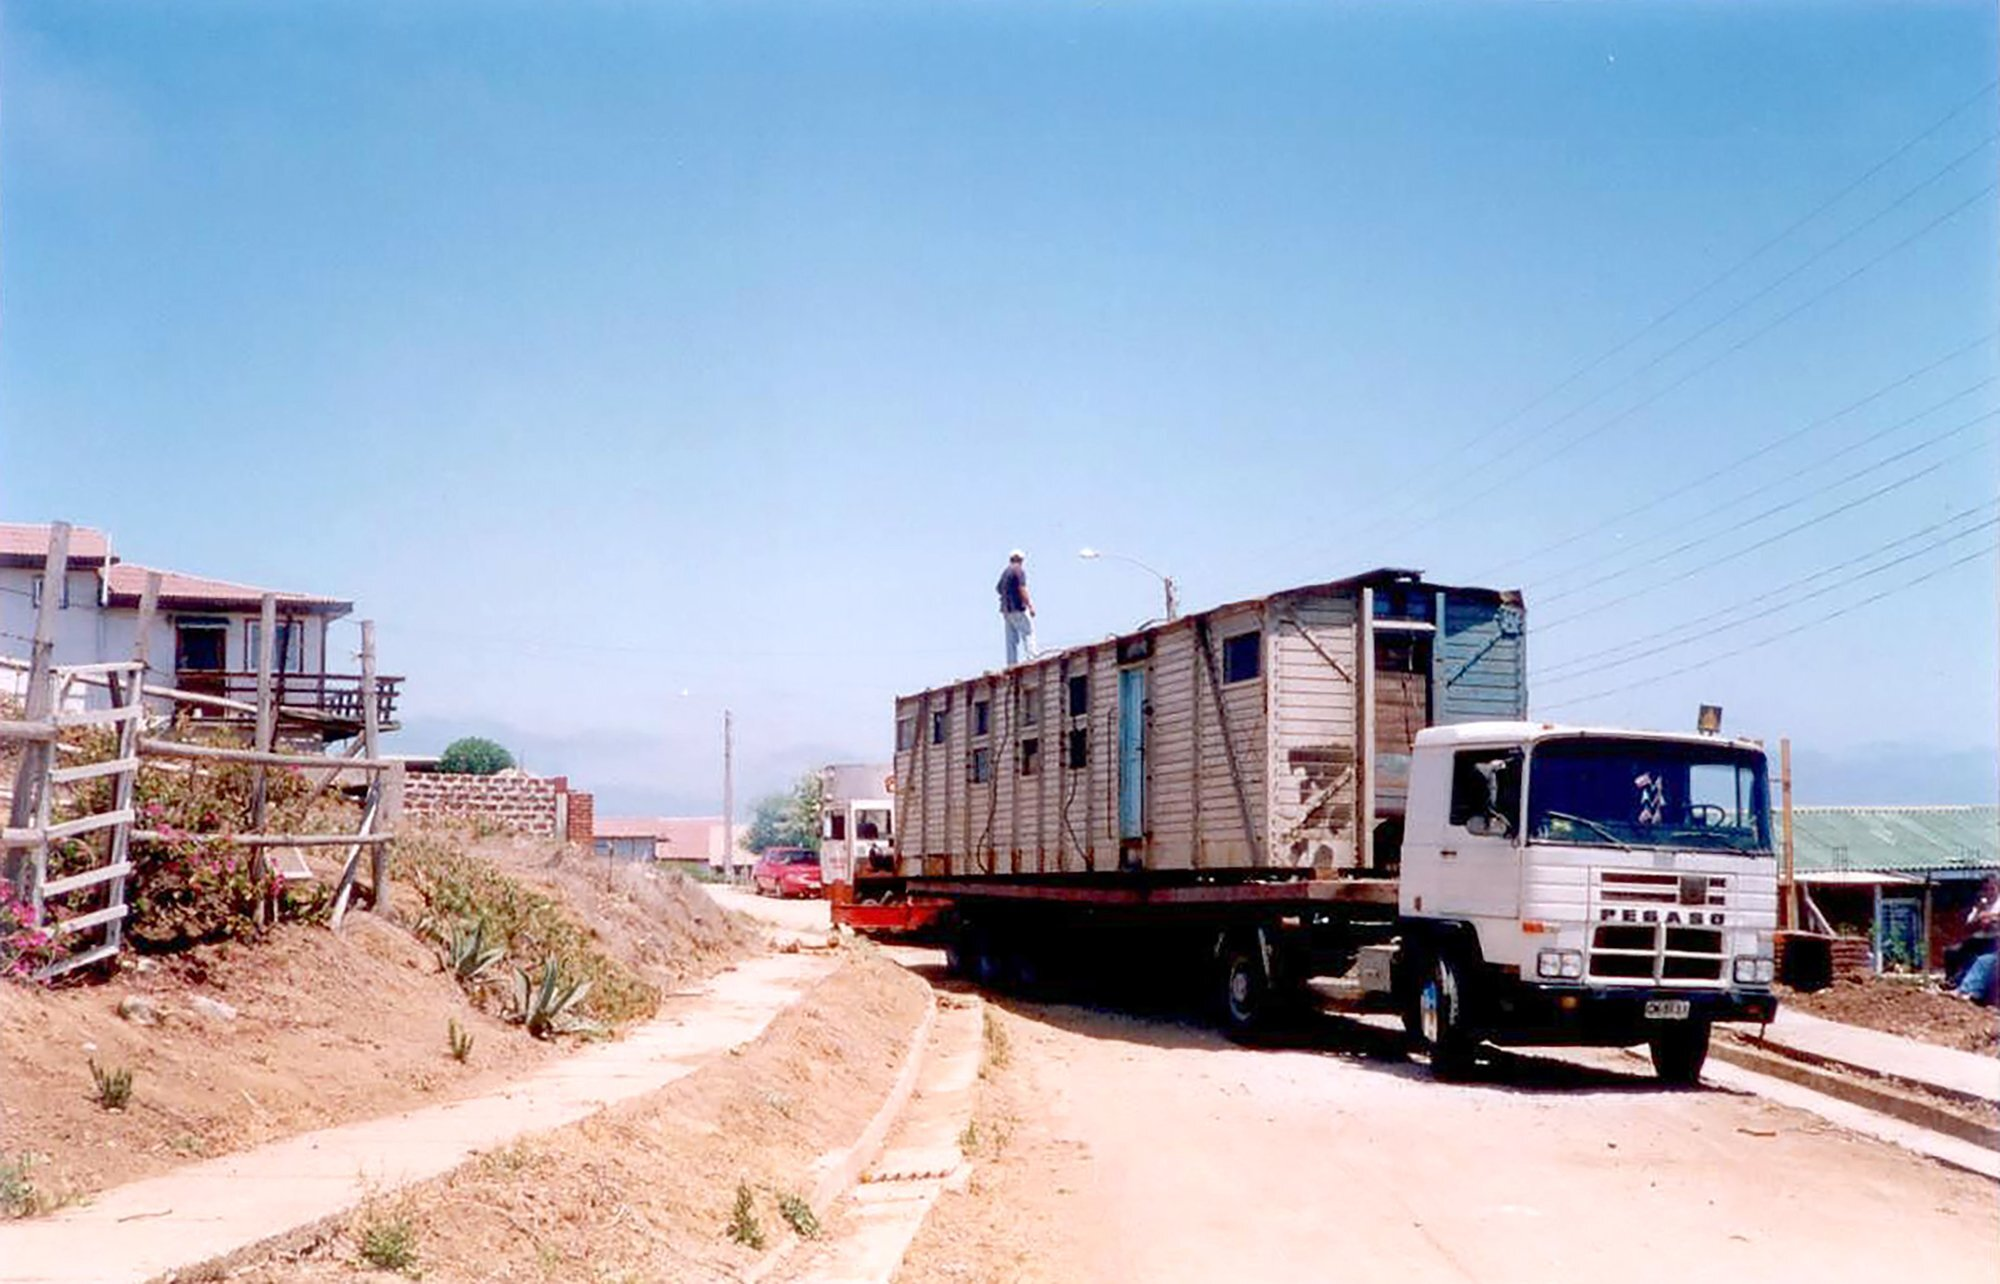 Coupled Wagon House - Crescente Böhme Alemparte - Chile - Wagon on Trailer - Humble Homes